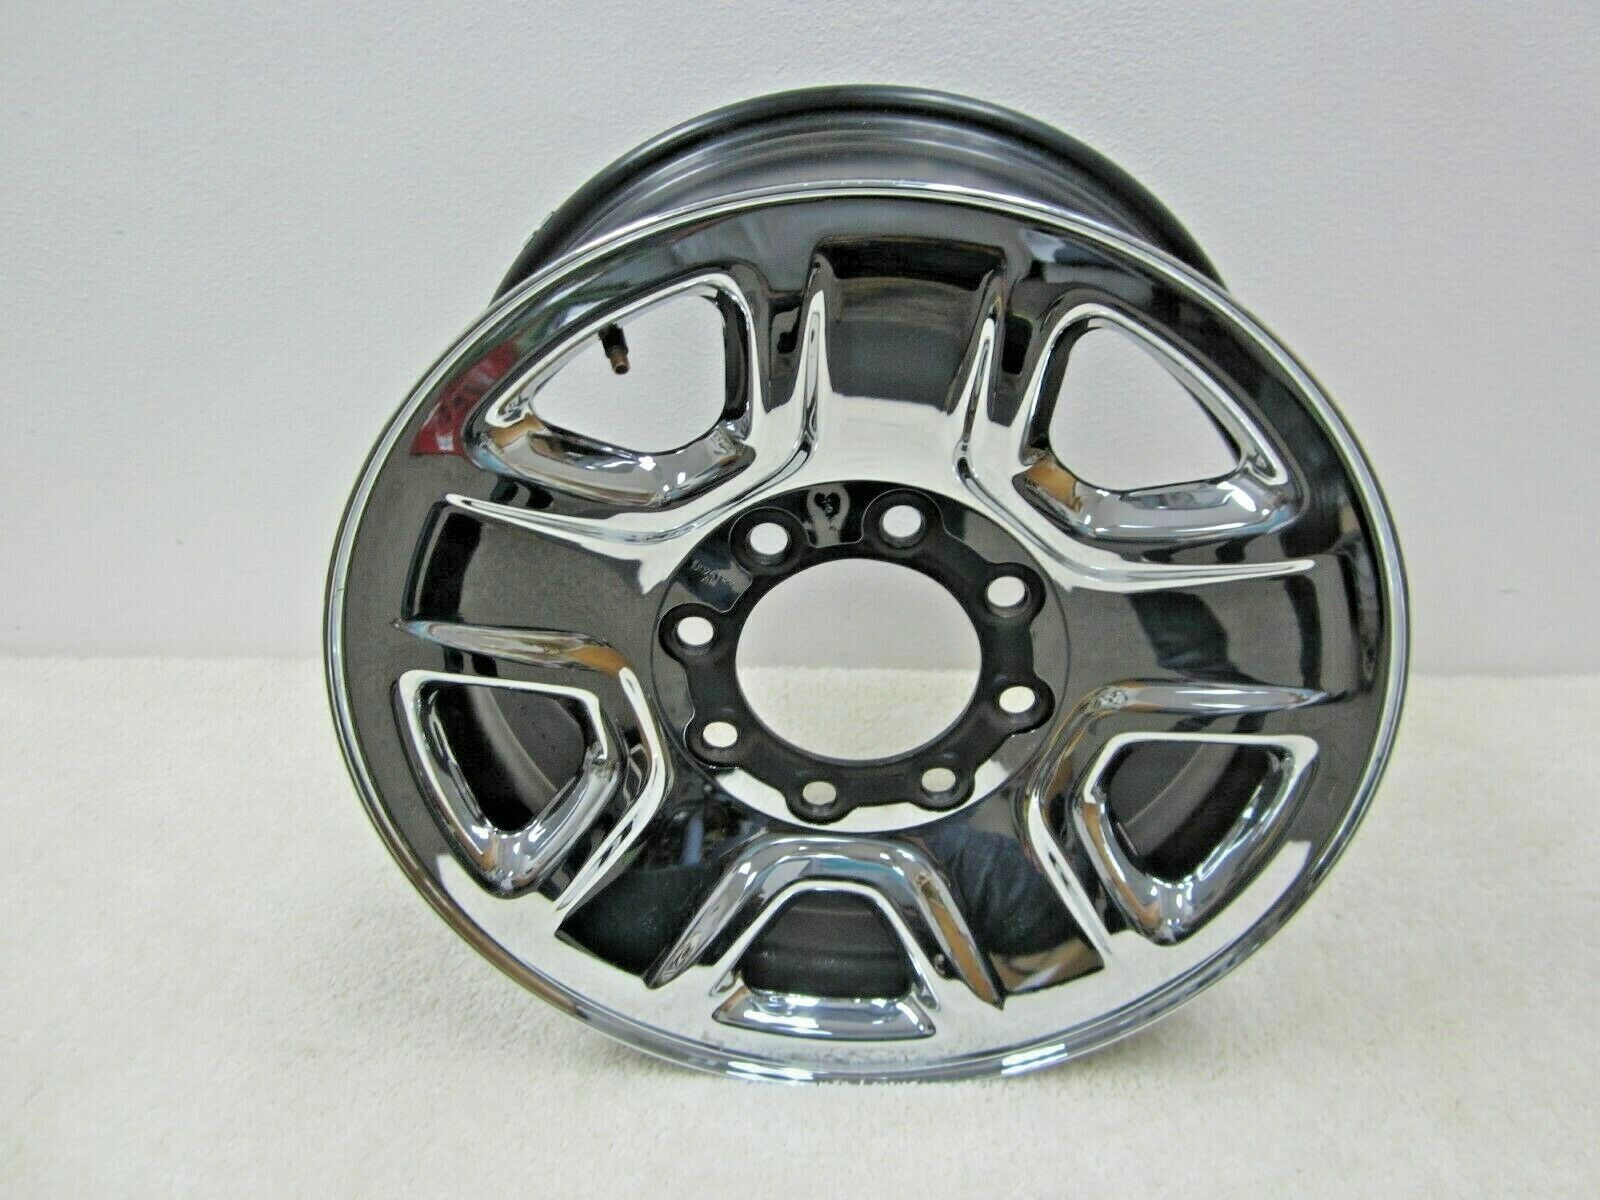 20pcs 1.87 Chrome 9//16-18 Wheel Lug Nuts fit 1998 Dodge Ram 3500 May Fit OEM Rims Buyer Needs to Review The spec